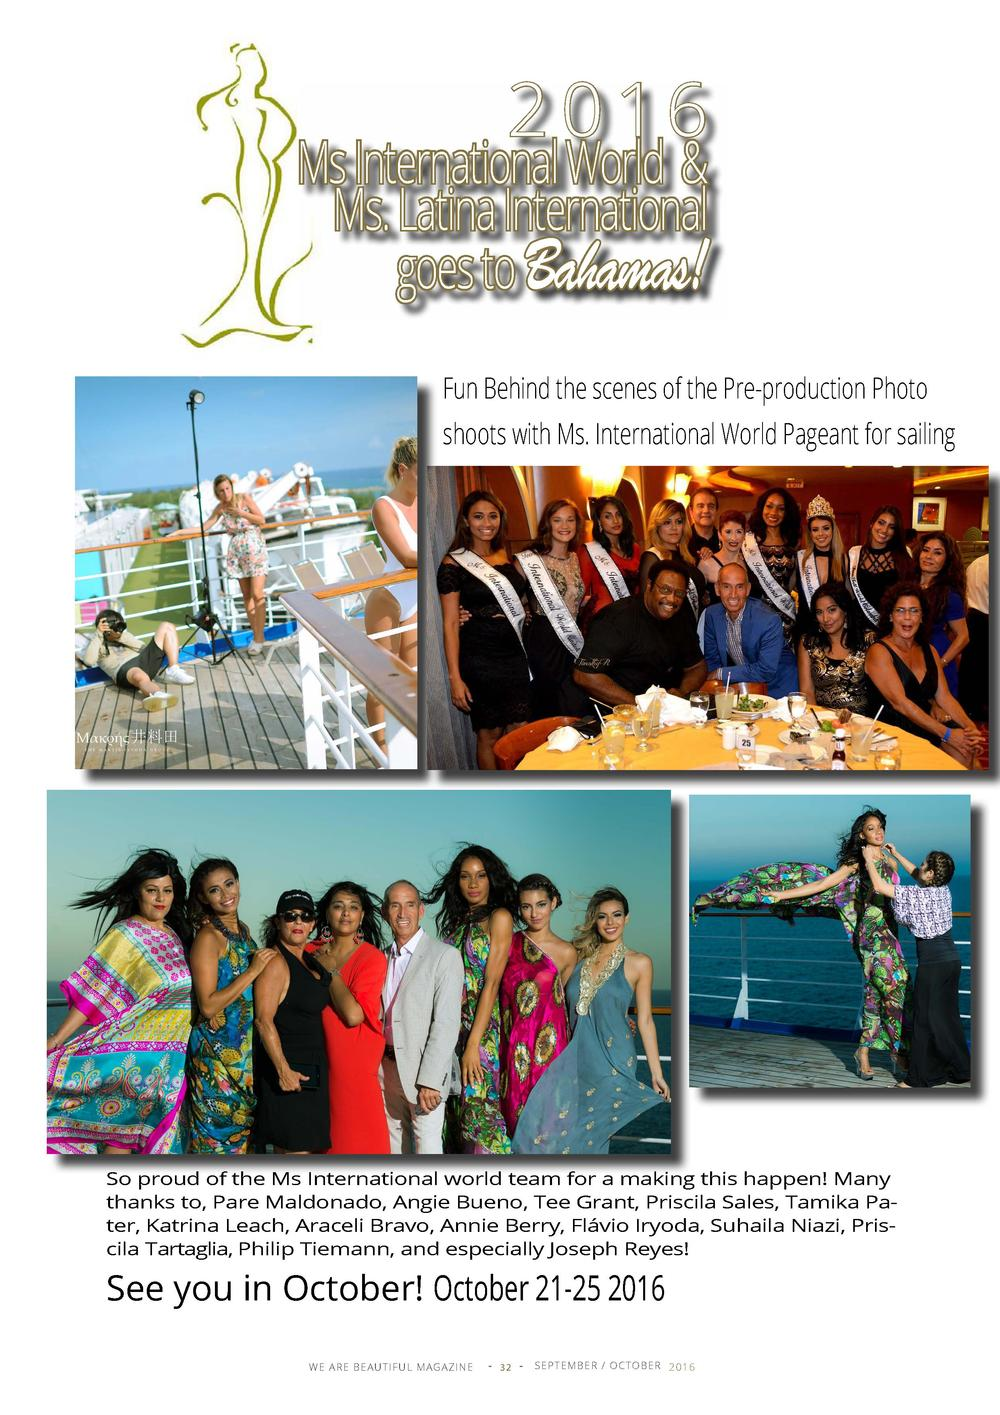 2 0 16  Ms International World   Ms. Latina International goes to Bahamas  Fun Behind the scenes of the Pre-production Pho...